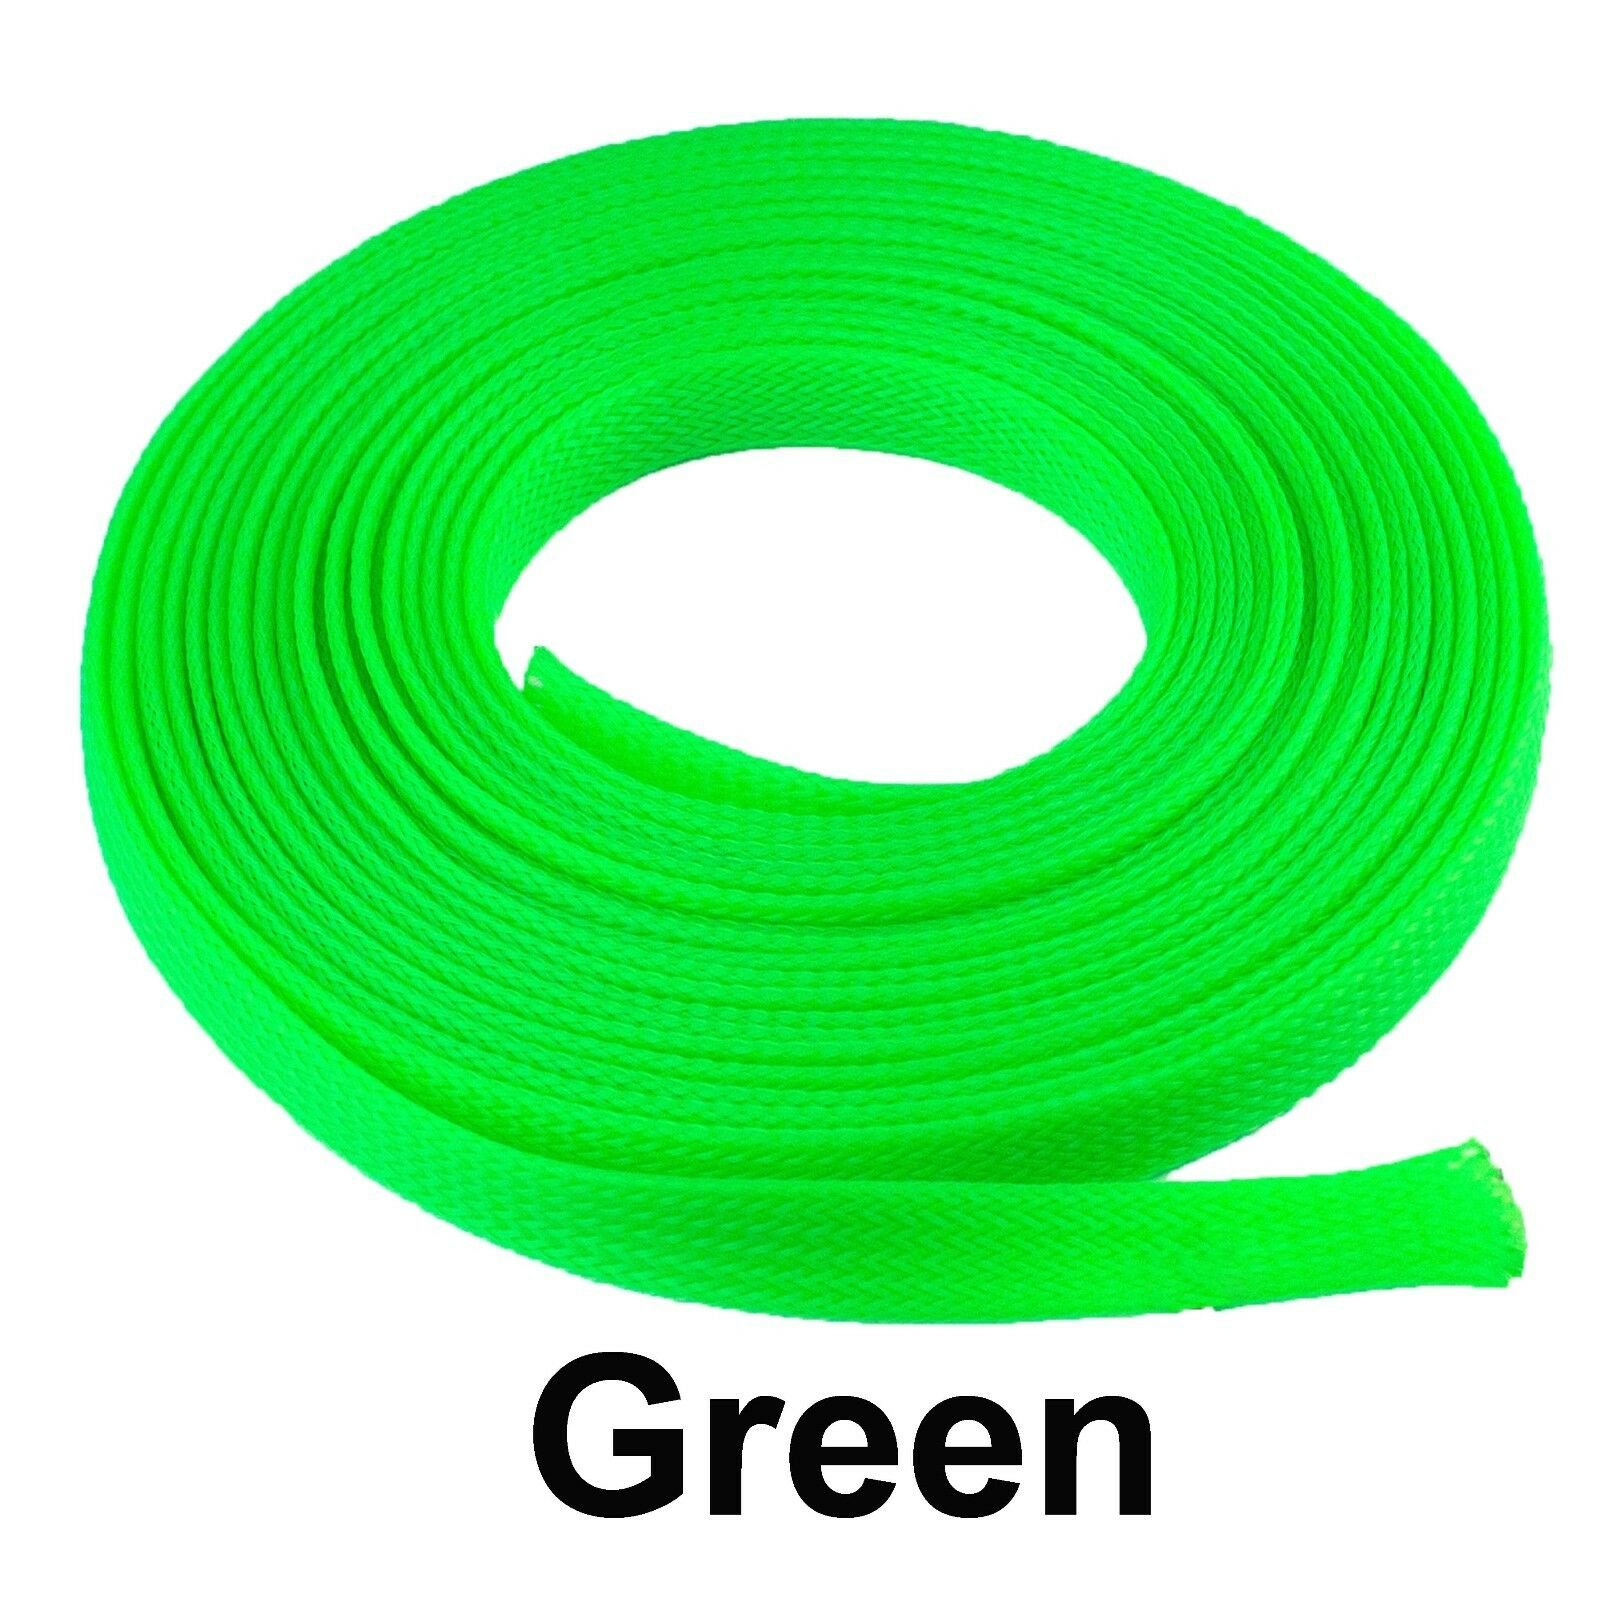 ALL SIZES & COLORS 5' FT - 100 Feet Expandable Cable Sleeving Braided Tubing LOT Green